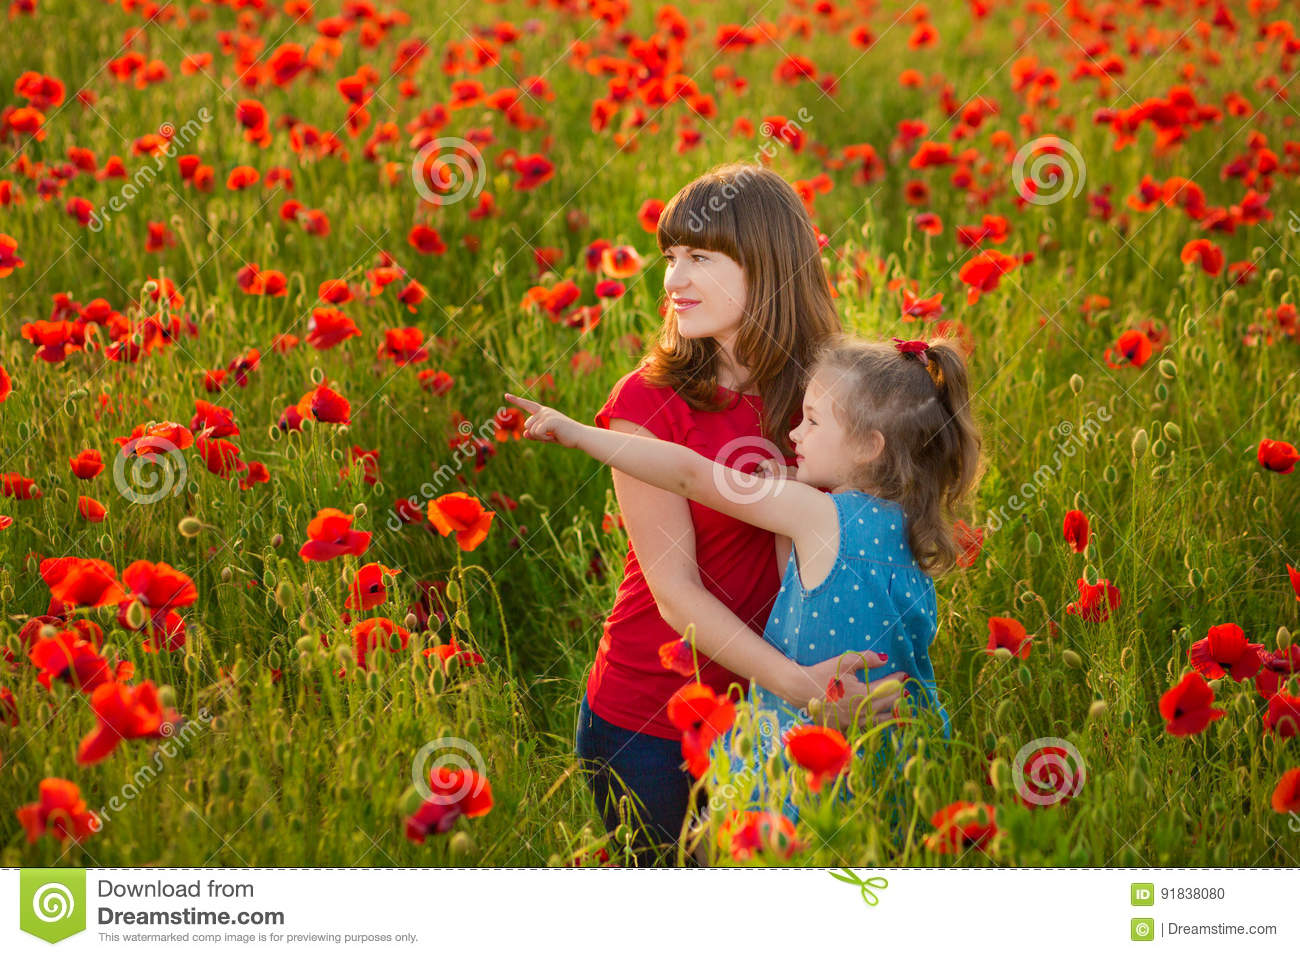 Download Mother And Daughter Smiling In A Poppy Field. The Picnic In The Poppy Field. Walk With Family In Poppy Field. The Cart Poppies Stock Photo - Image of caucasian, childhood: 91838080